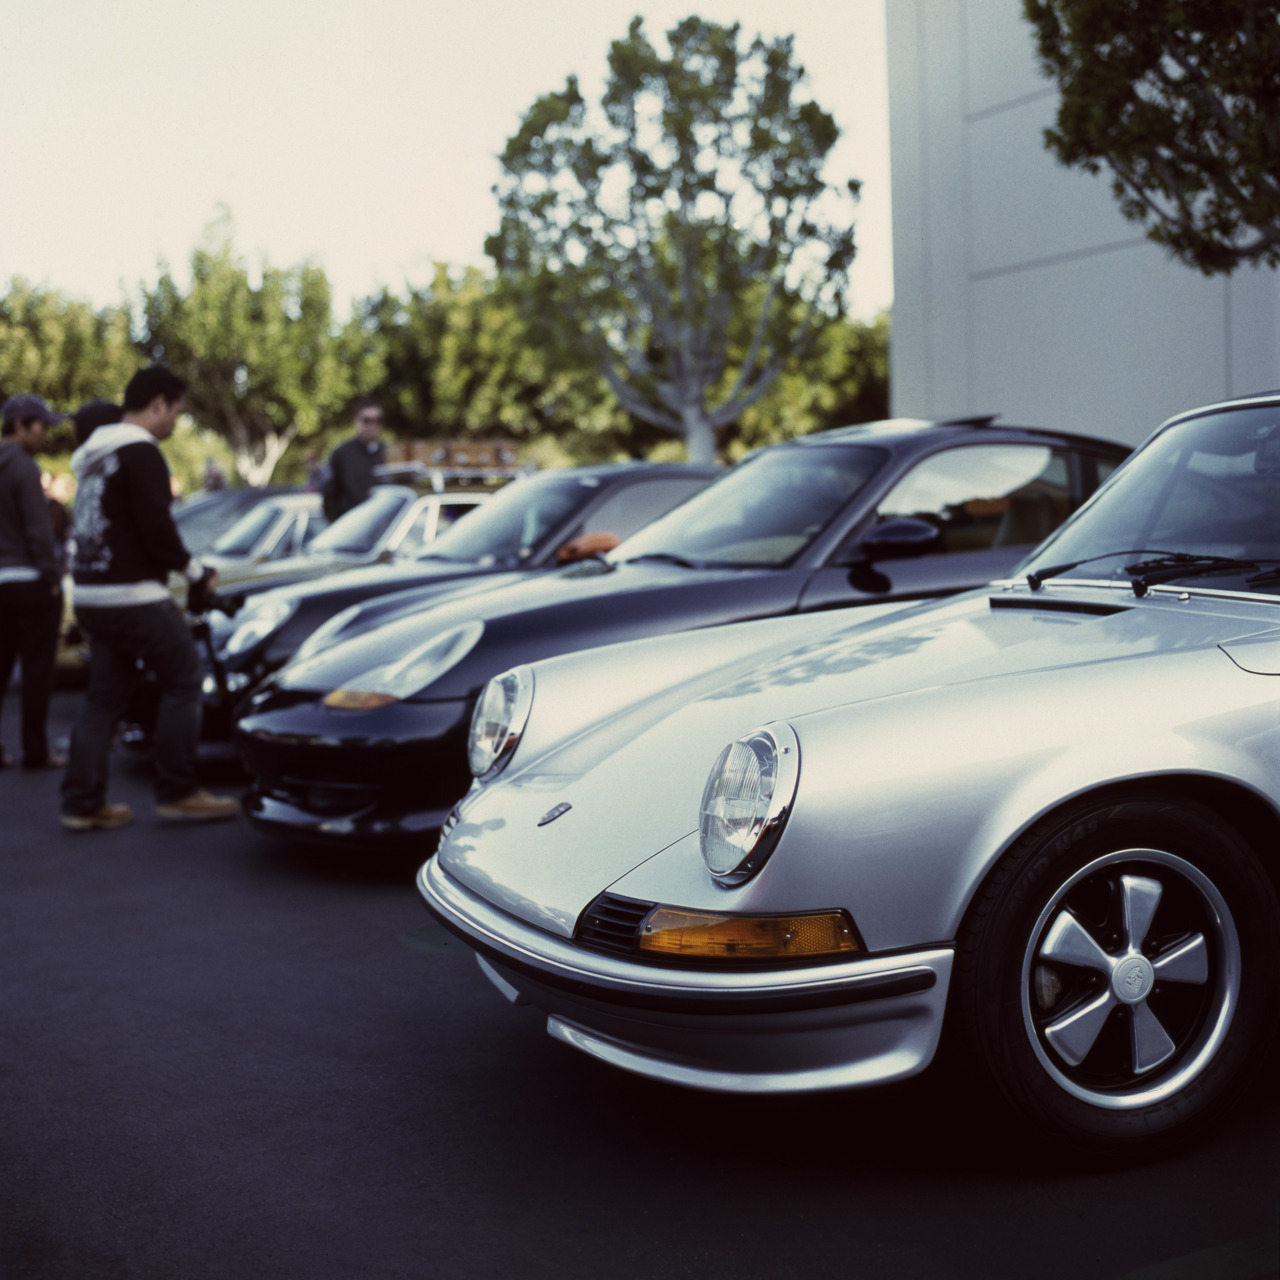 Porsche 911 Taken at Cars and Coffee Irvine with a Hasselblad 500CM on Fuji Provia 400X. Stephen Poon Photography